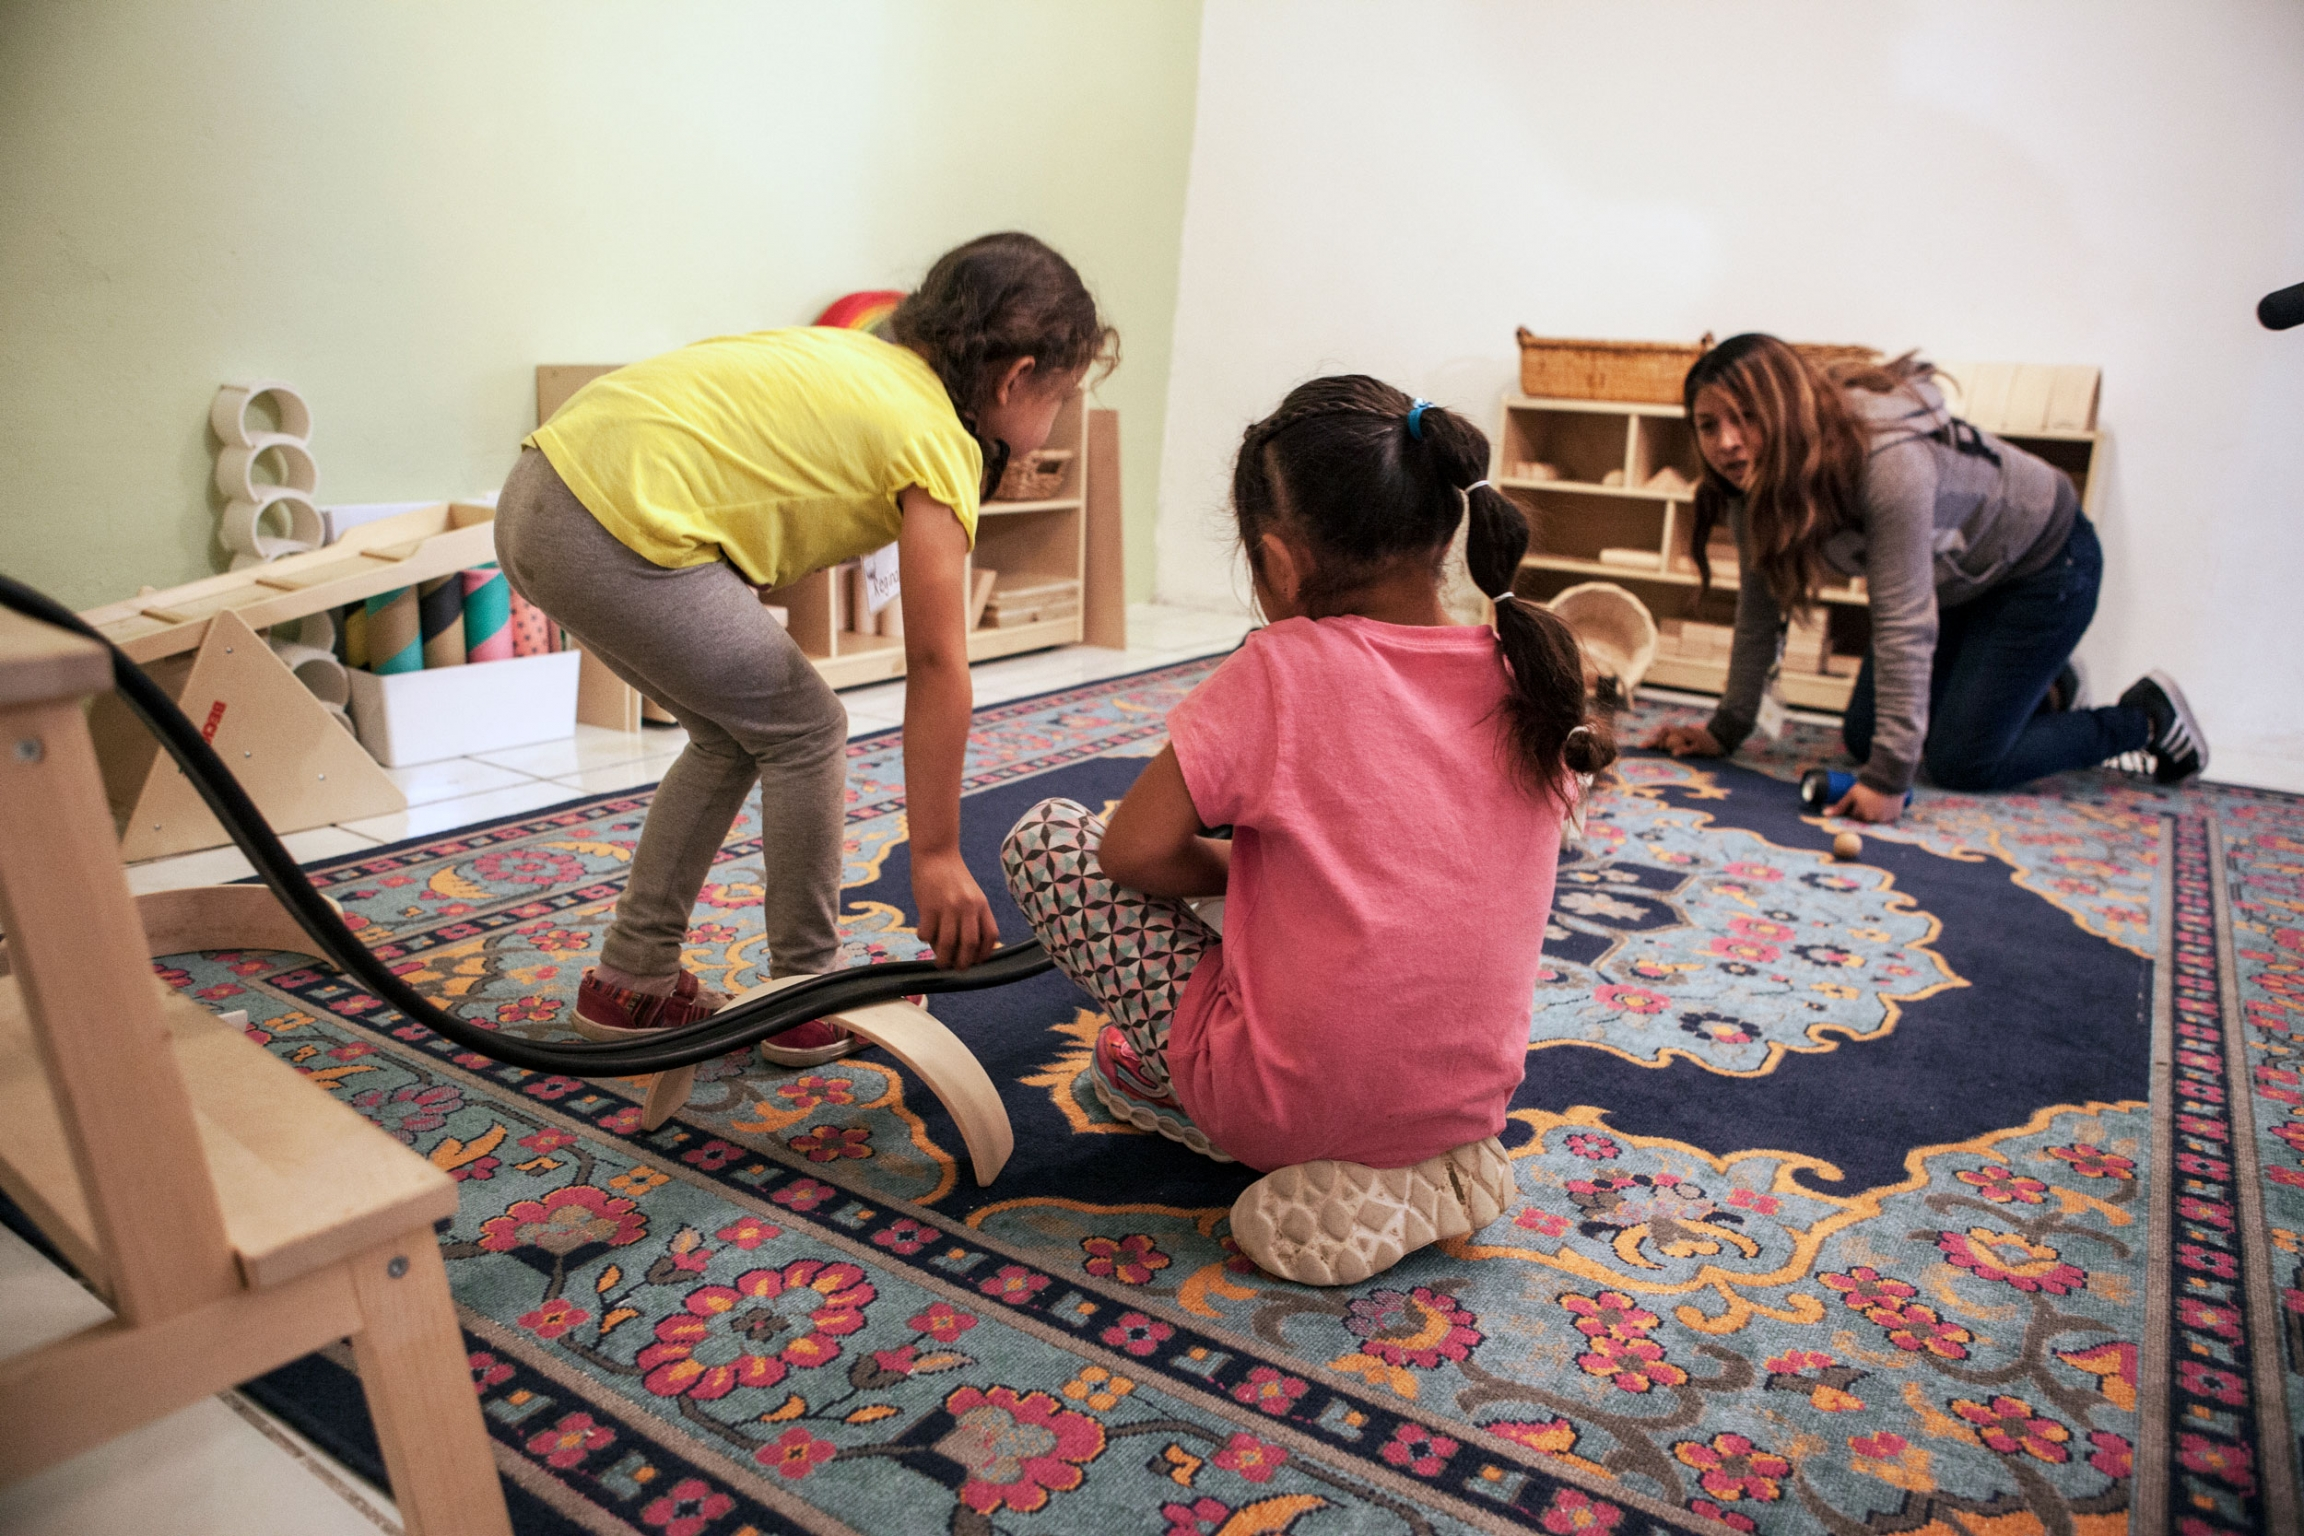 Two young girls are shown playing with a toy racing track.